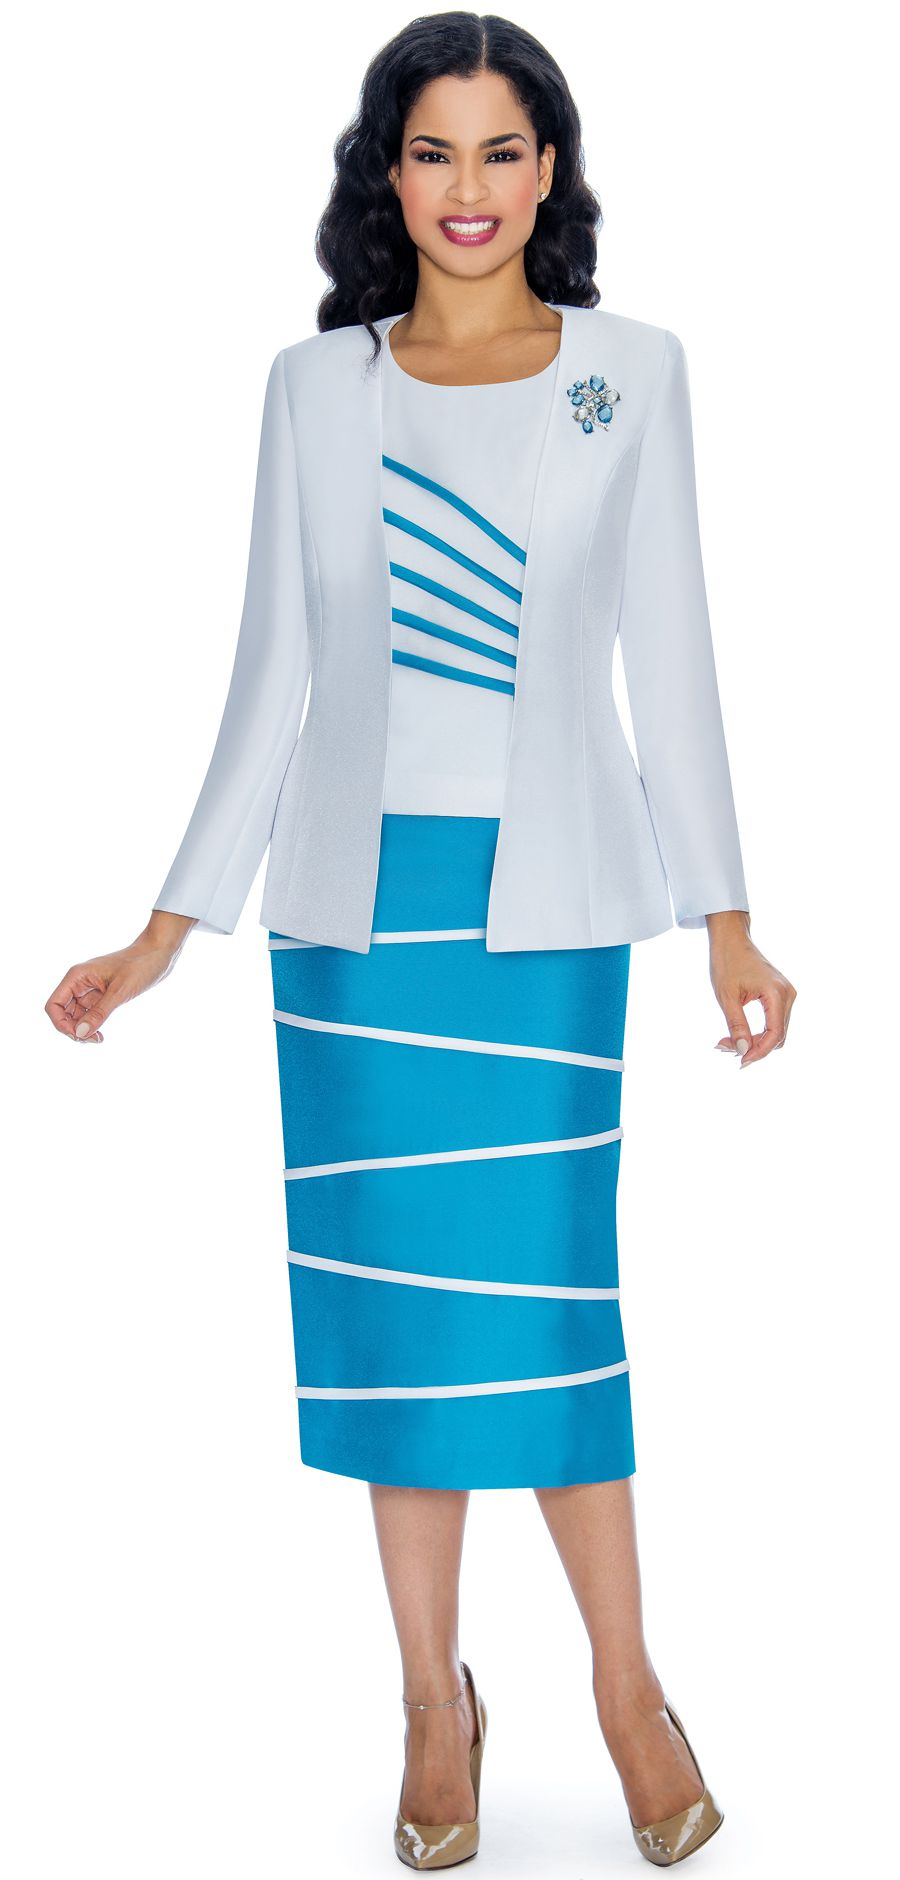 Giovanna Suit 0842-White/Turquoise - Church Suits For Less